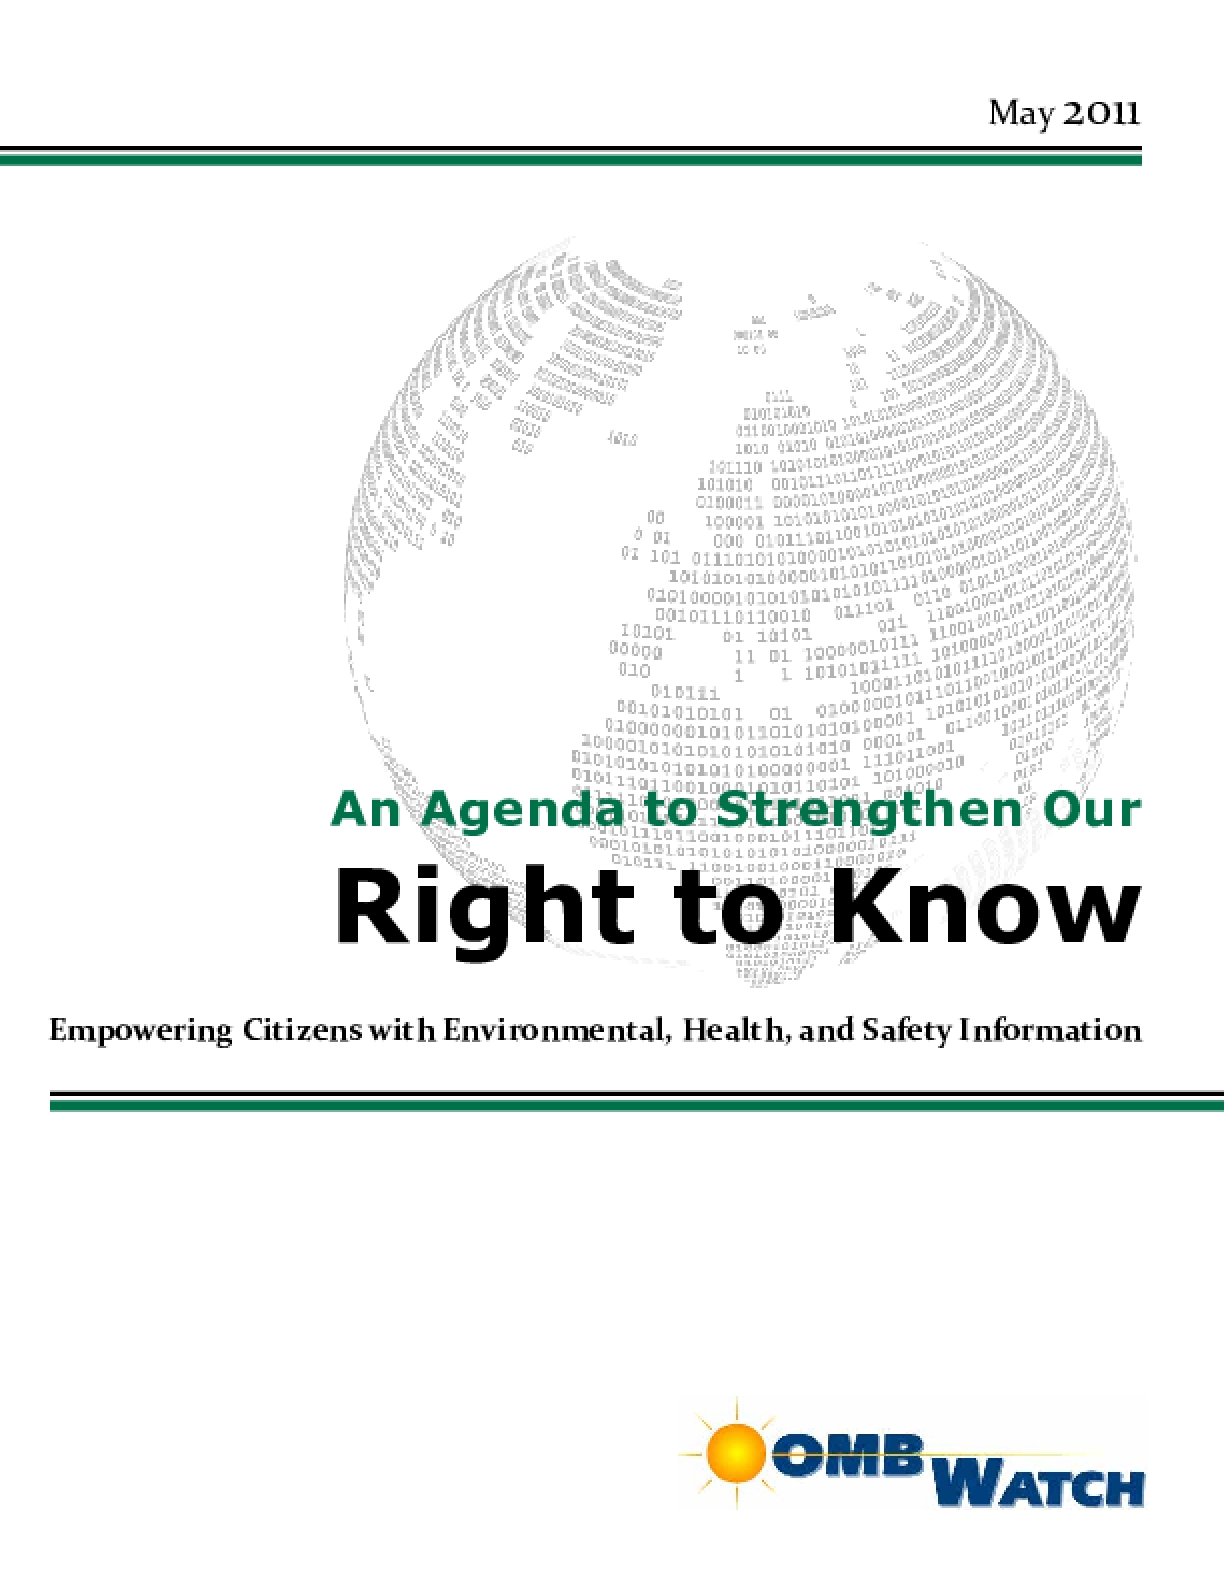 An Agenda to Strengthen Our Right to Know: Empowering Citizens with Environmental, Health, and Safety Information